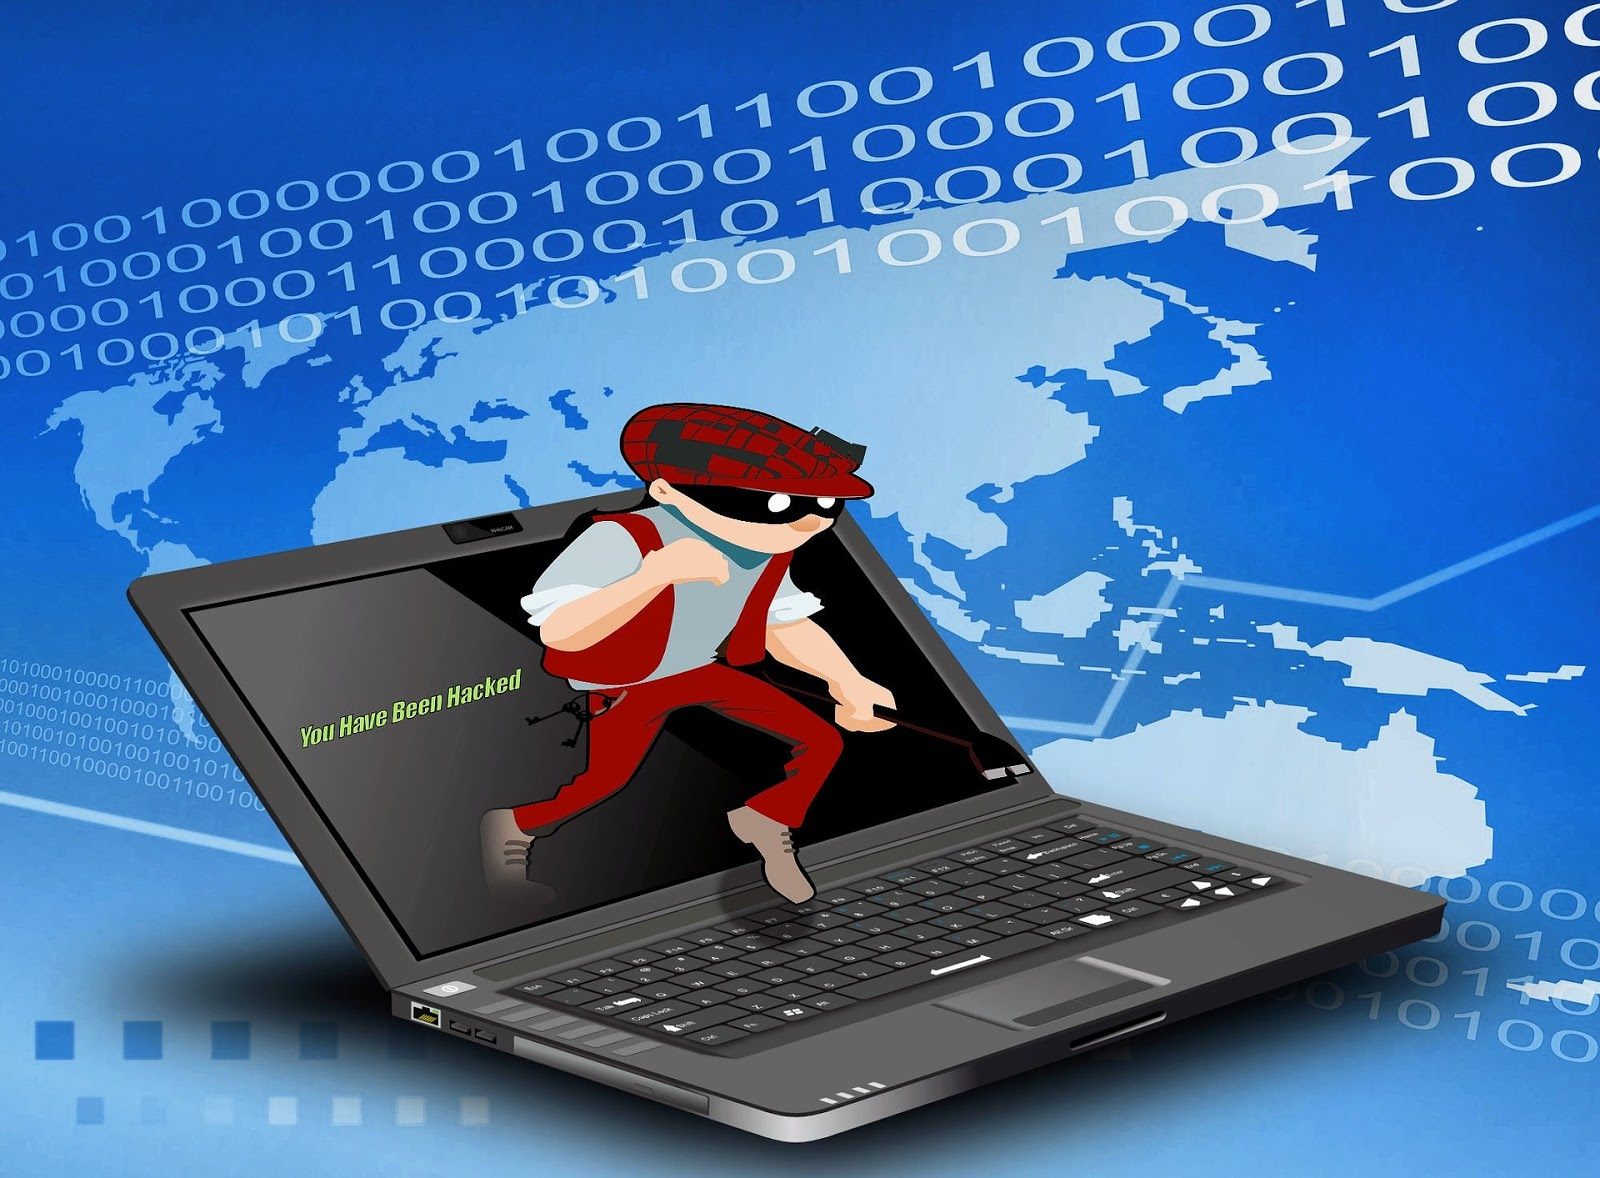 How to behave if hacked Contact: tips and tricks 52